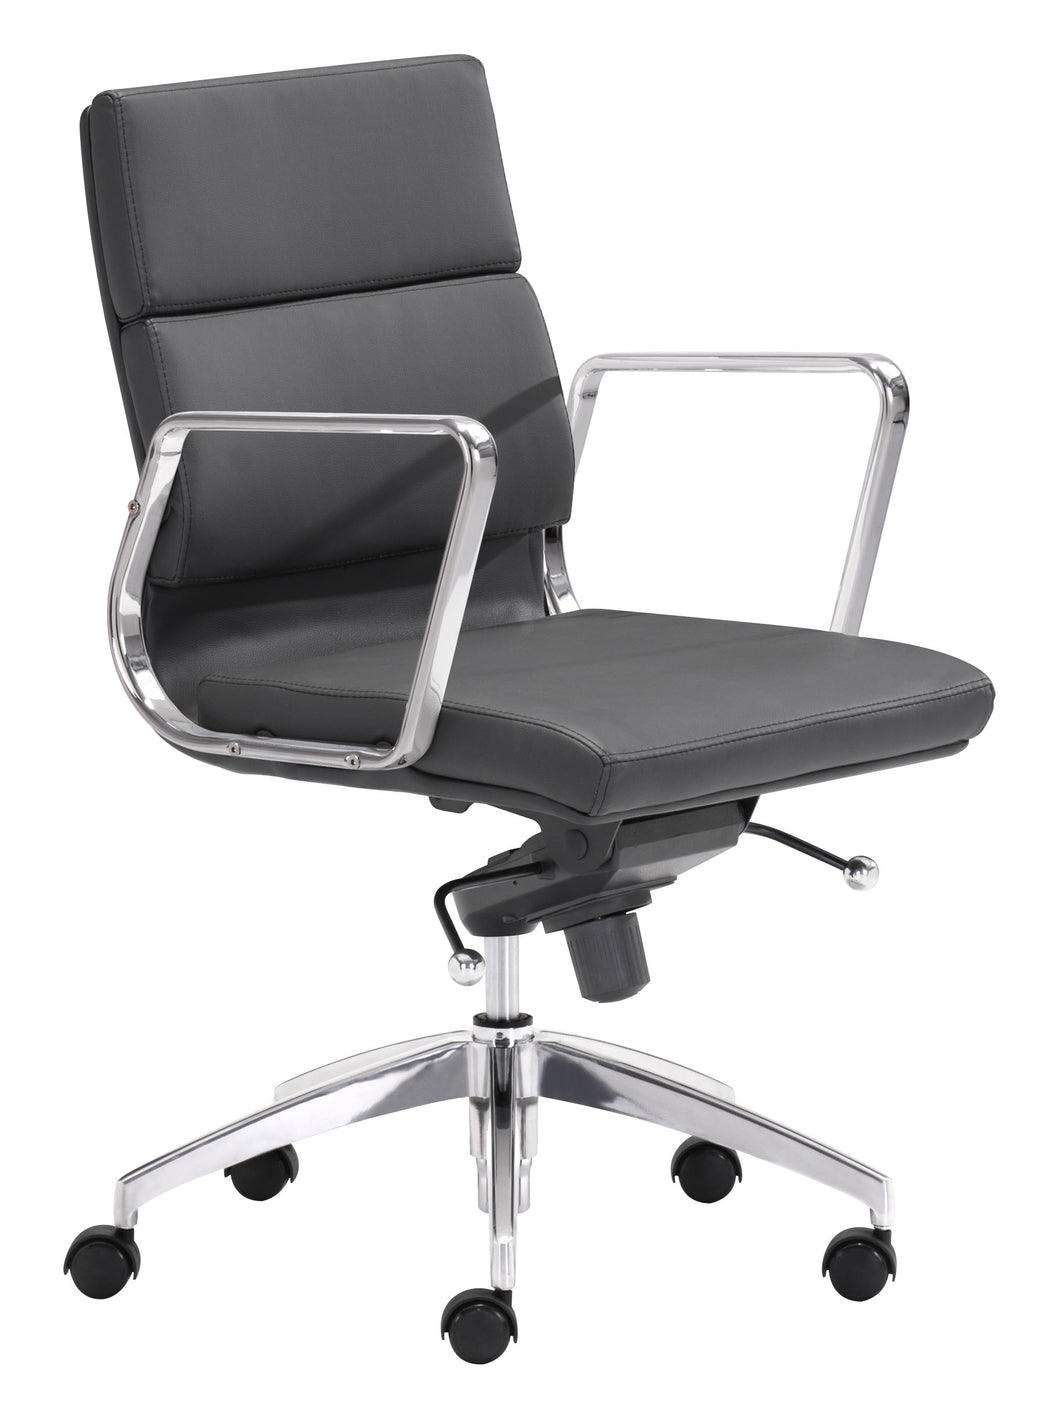 Low Back Office Chair Black